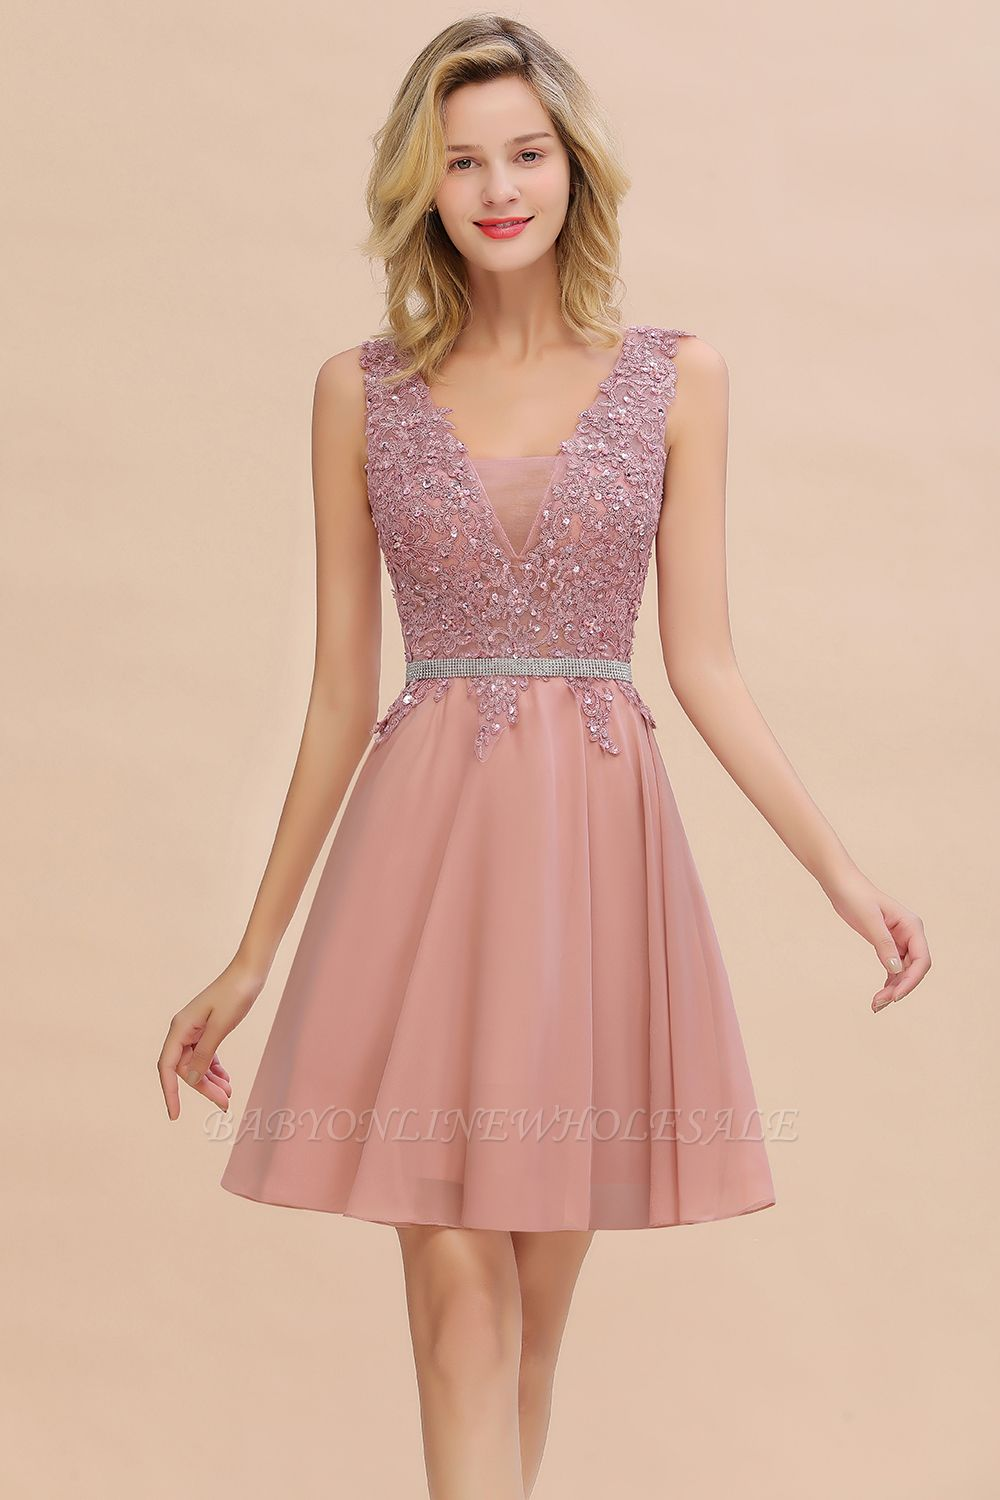 Cute Deep V-neck Short Sexy Sleeveless V-back Dusty Pink Knee length Womens Dress for Cocktail Party